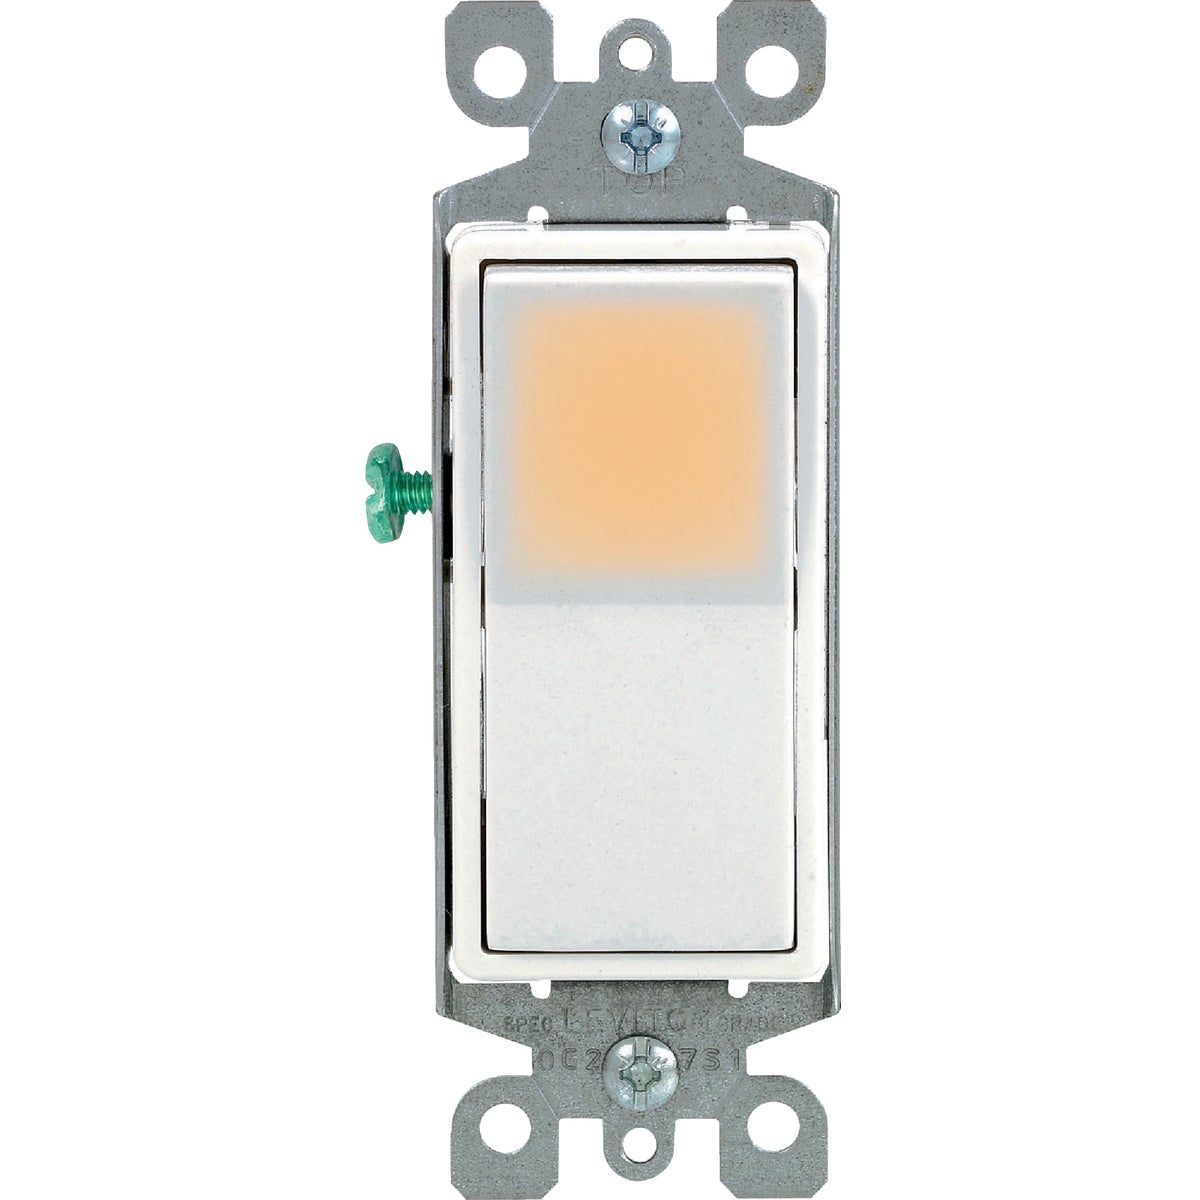 WHT 3-WAY GRND SWITCH - R72-5613-2WS by Leviton Mfg Co